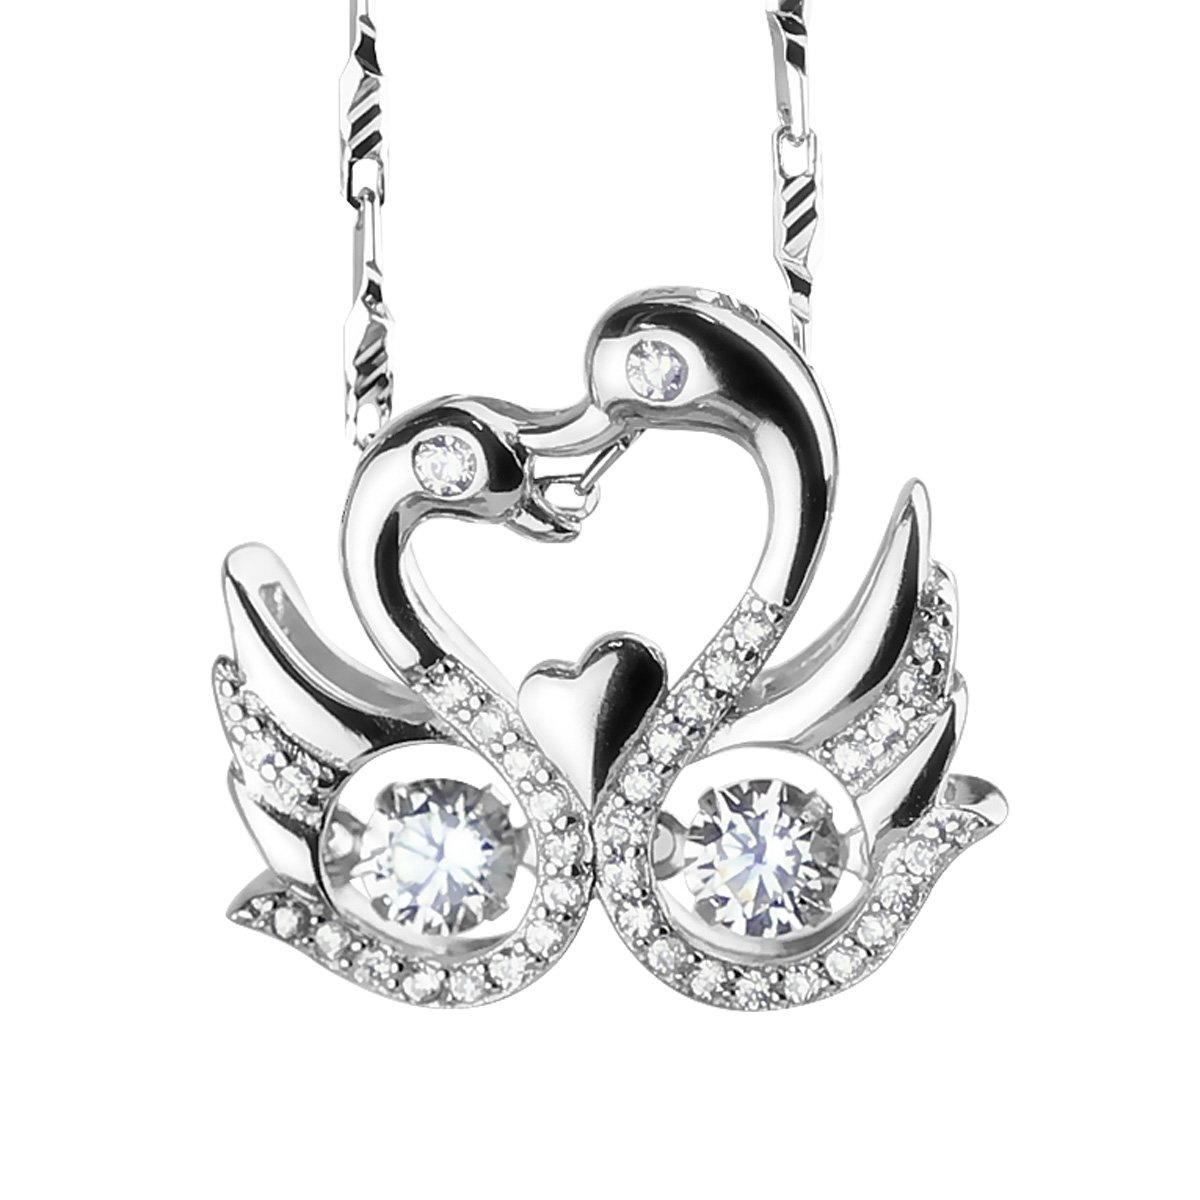 Merdia Women's S925 Sterling Silver Swan Animal Pendant Necklace with Cubic Zirconia - 18''